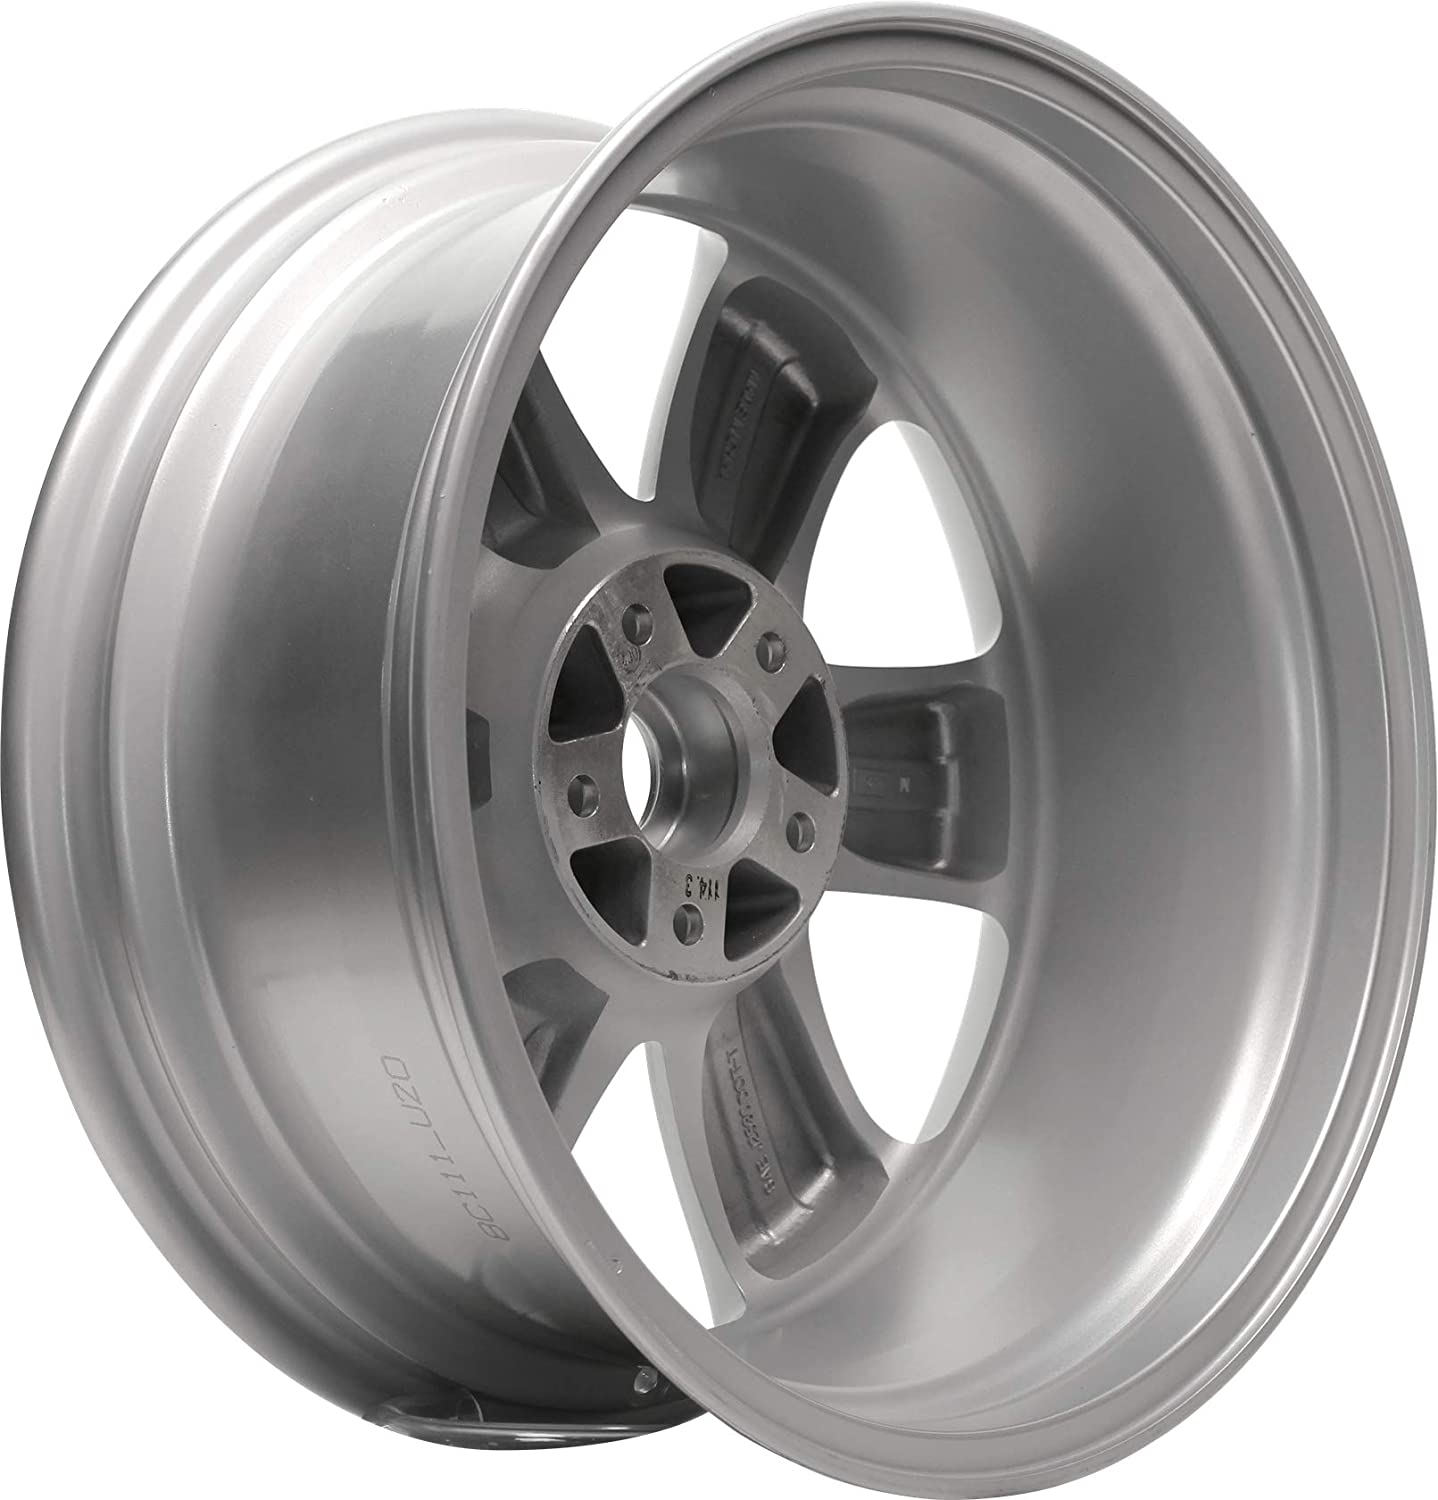 Partsynergy Replacement For New Replica Aluminum Alloy Wheel Rim 18 Inch Fits 2006-2007 Nissan Murano 5-115mm 6 Spokes